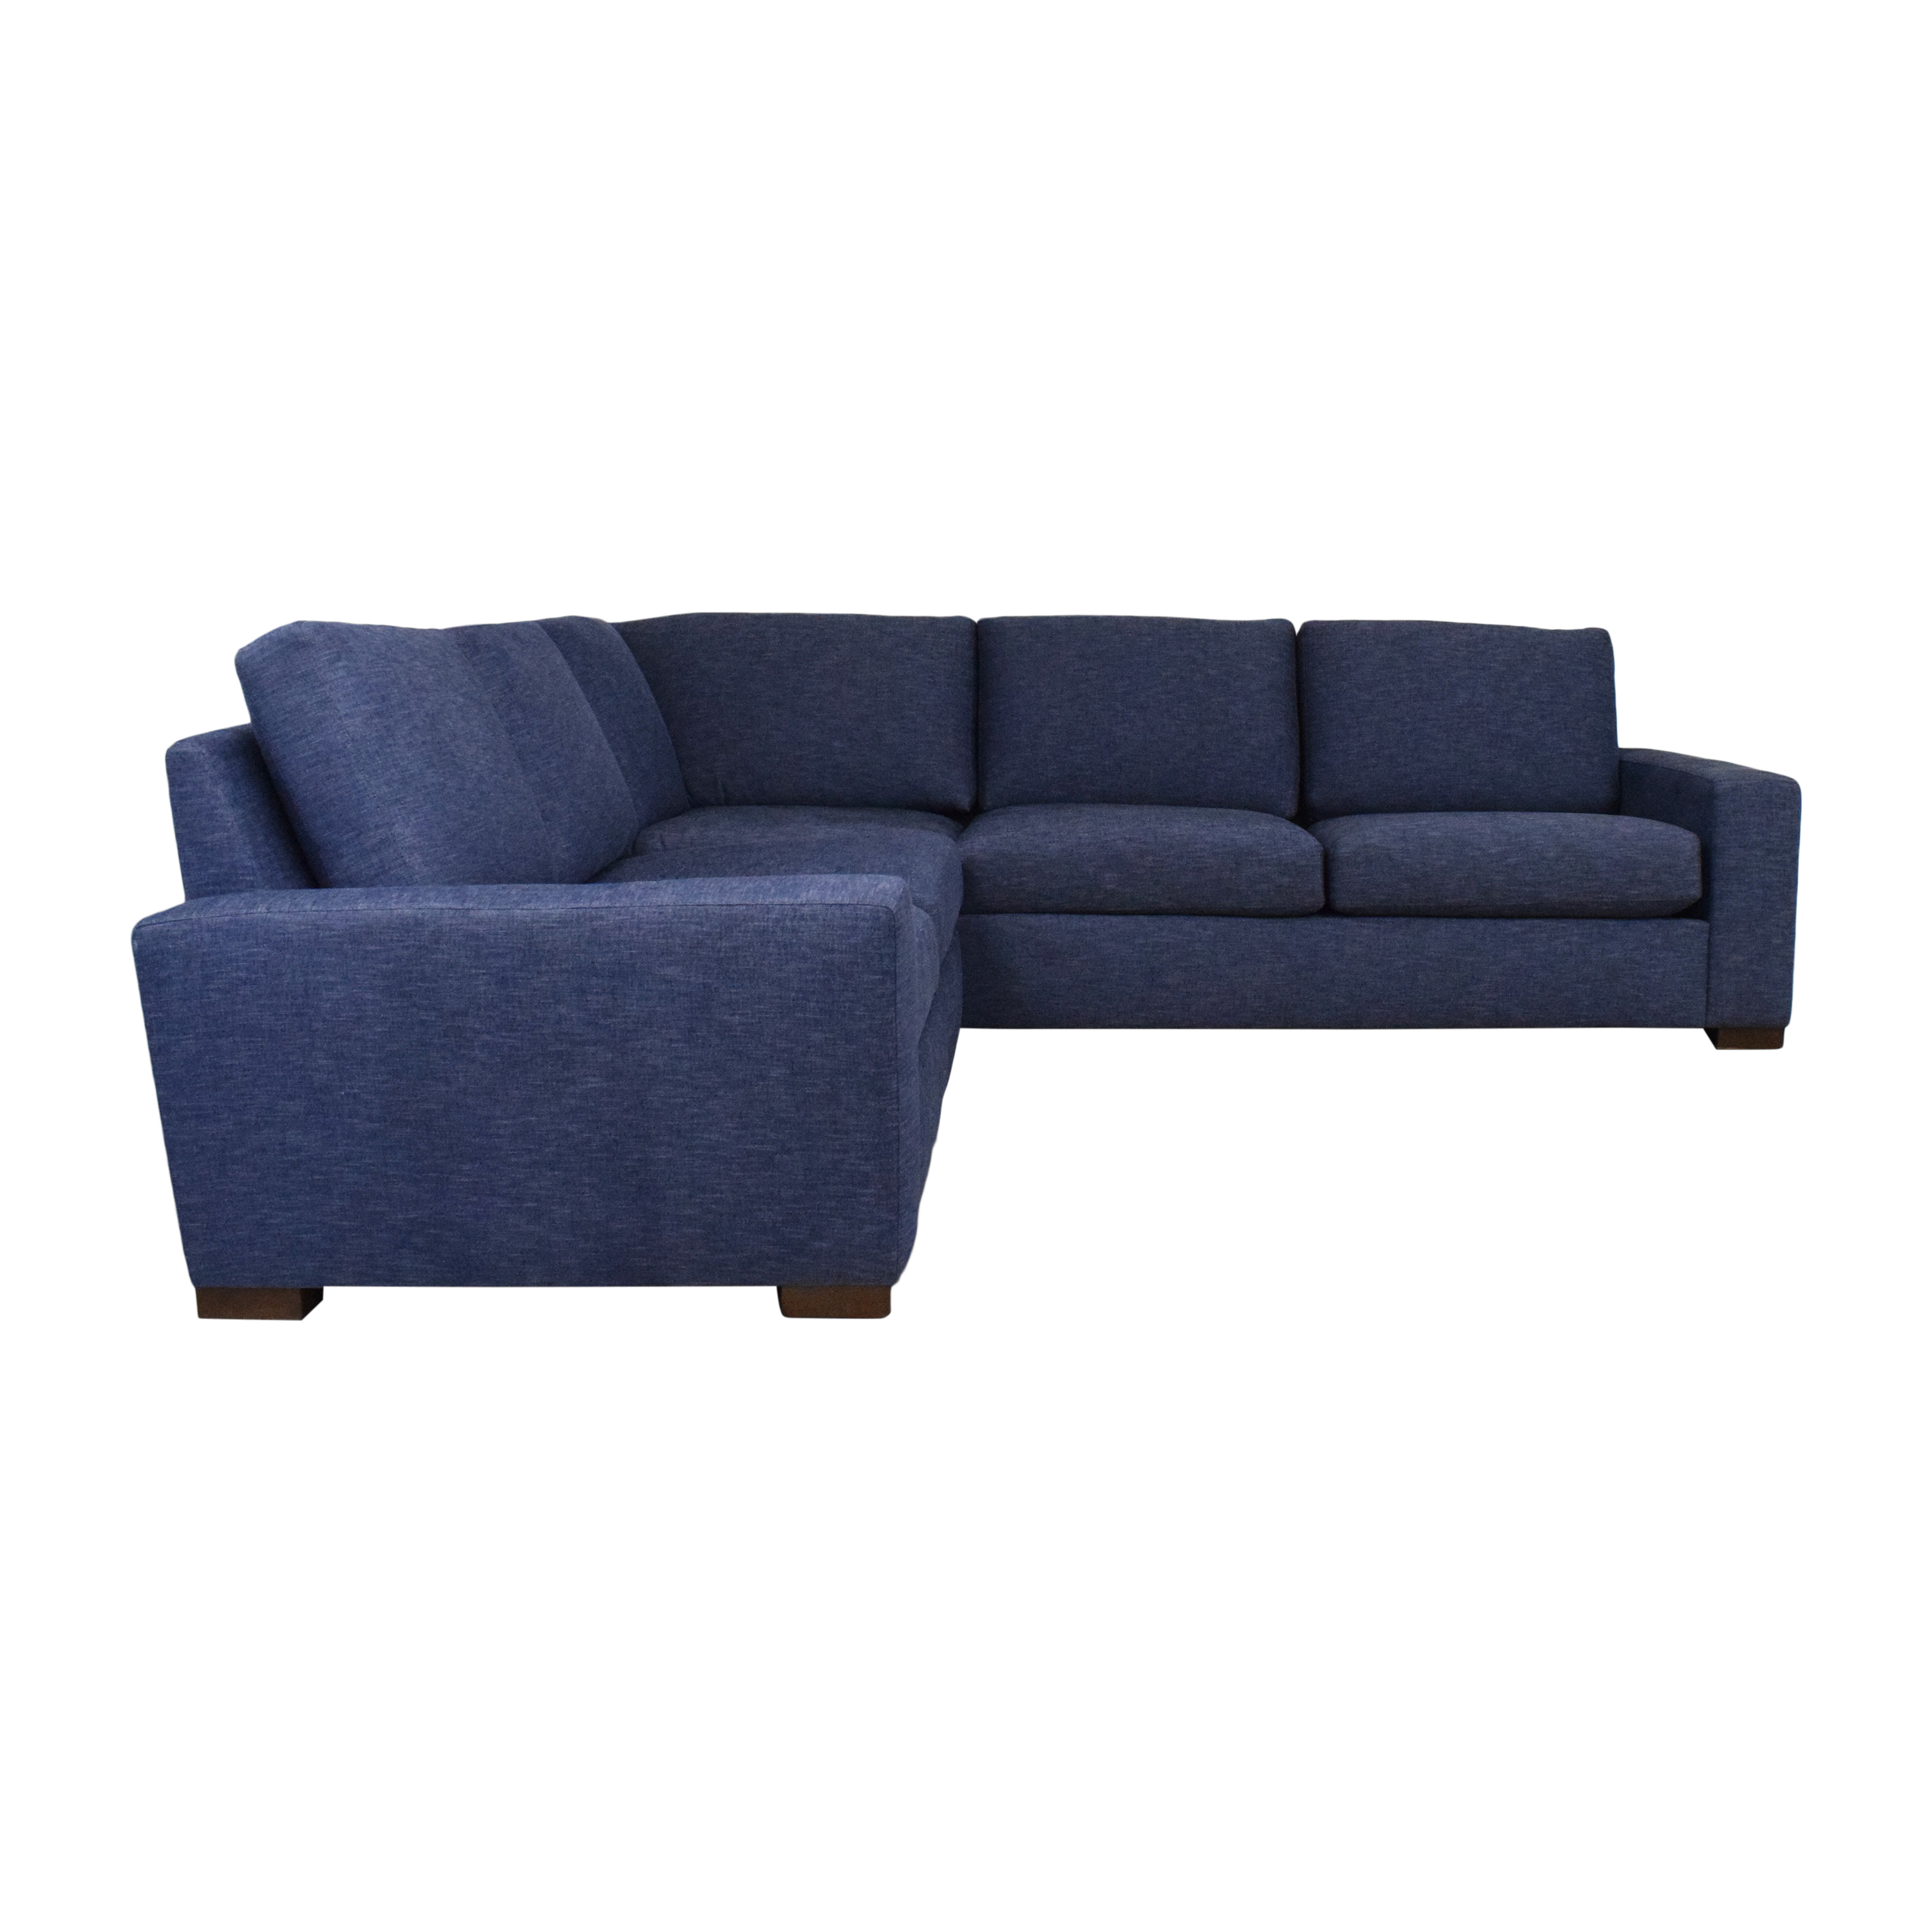 shop BenchMade Modern Couch Potato Sectional Sofa BenchMade Modern Sectionals